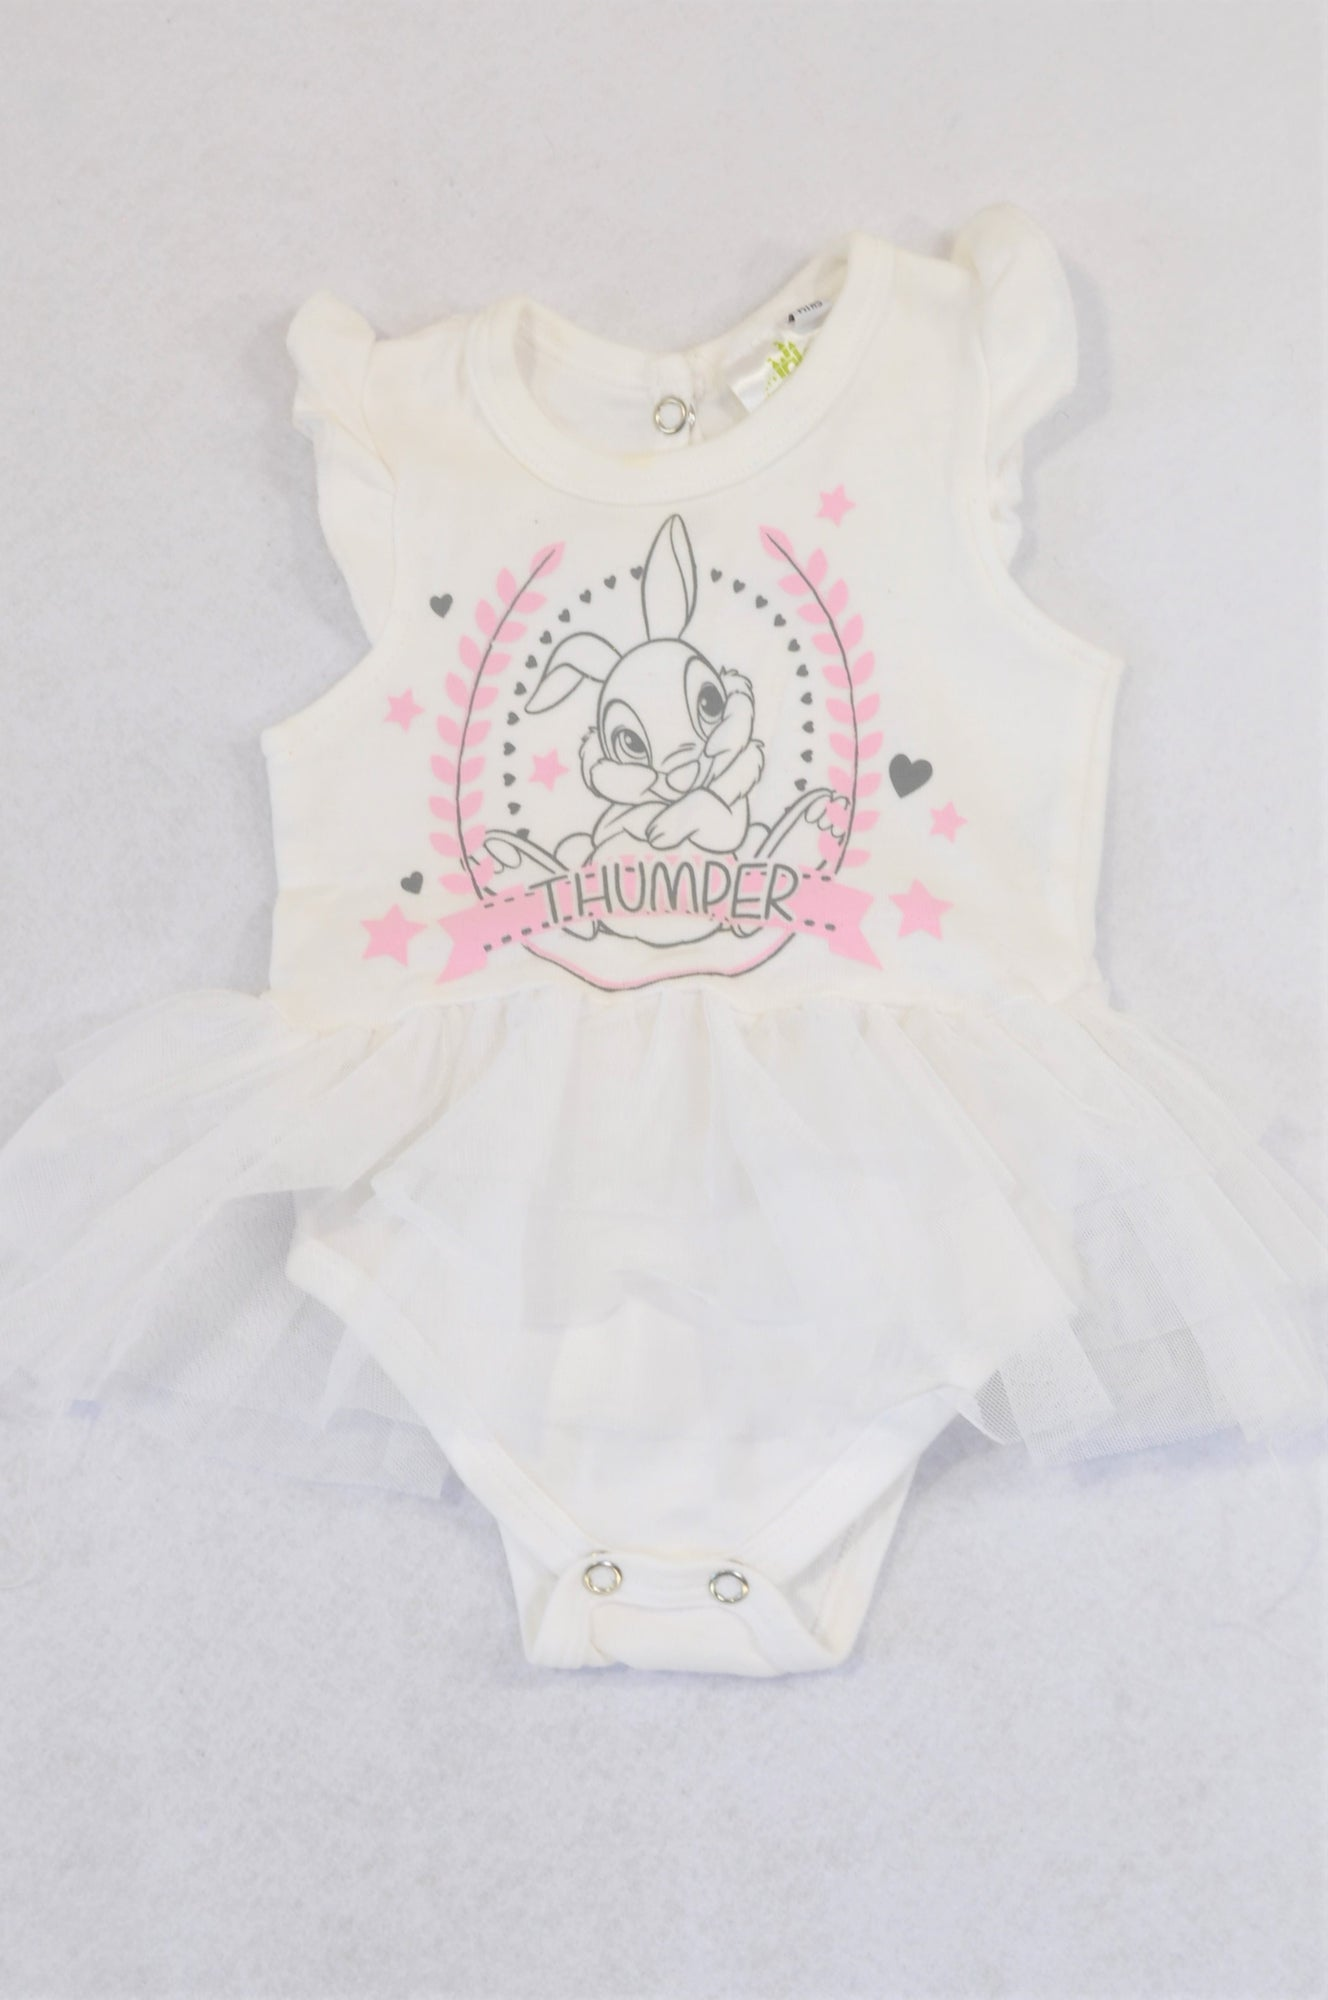 Disney White Tulle Thumper Baby Grow Girls 0-3 months